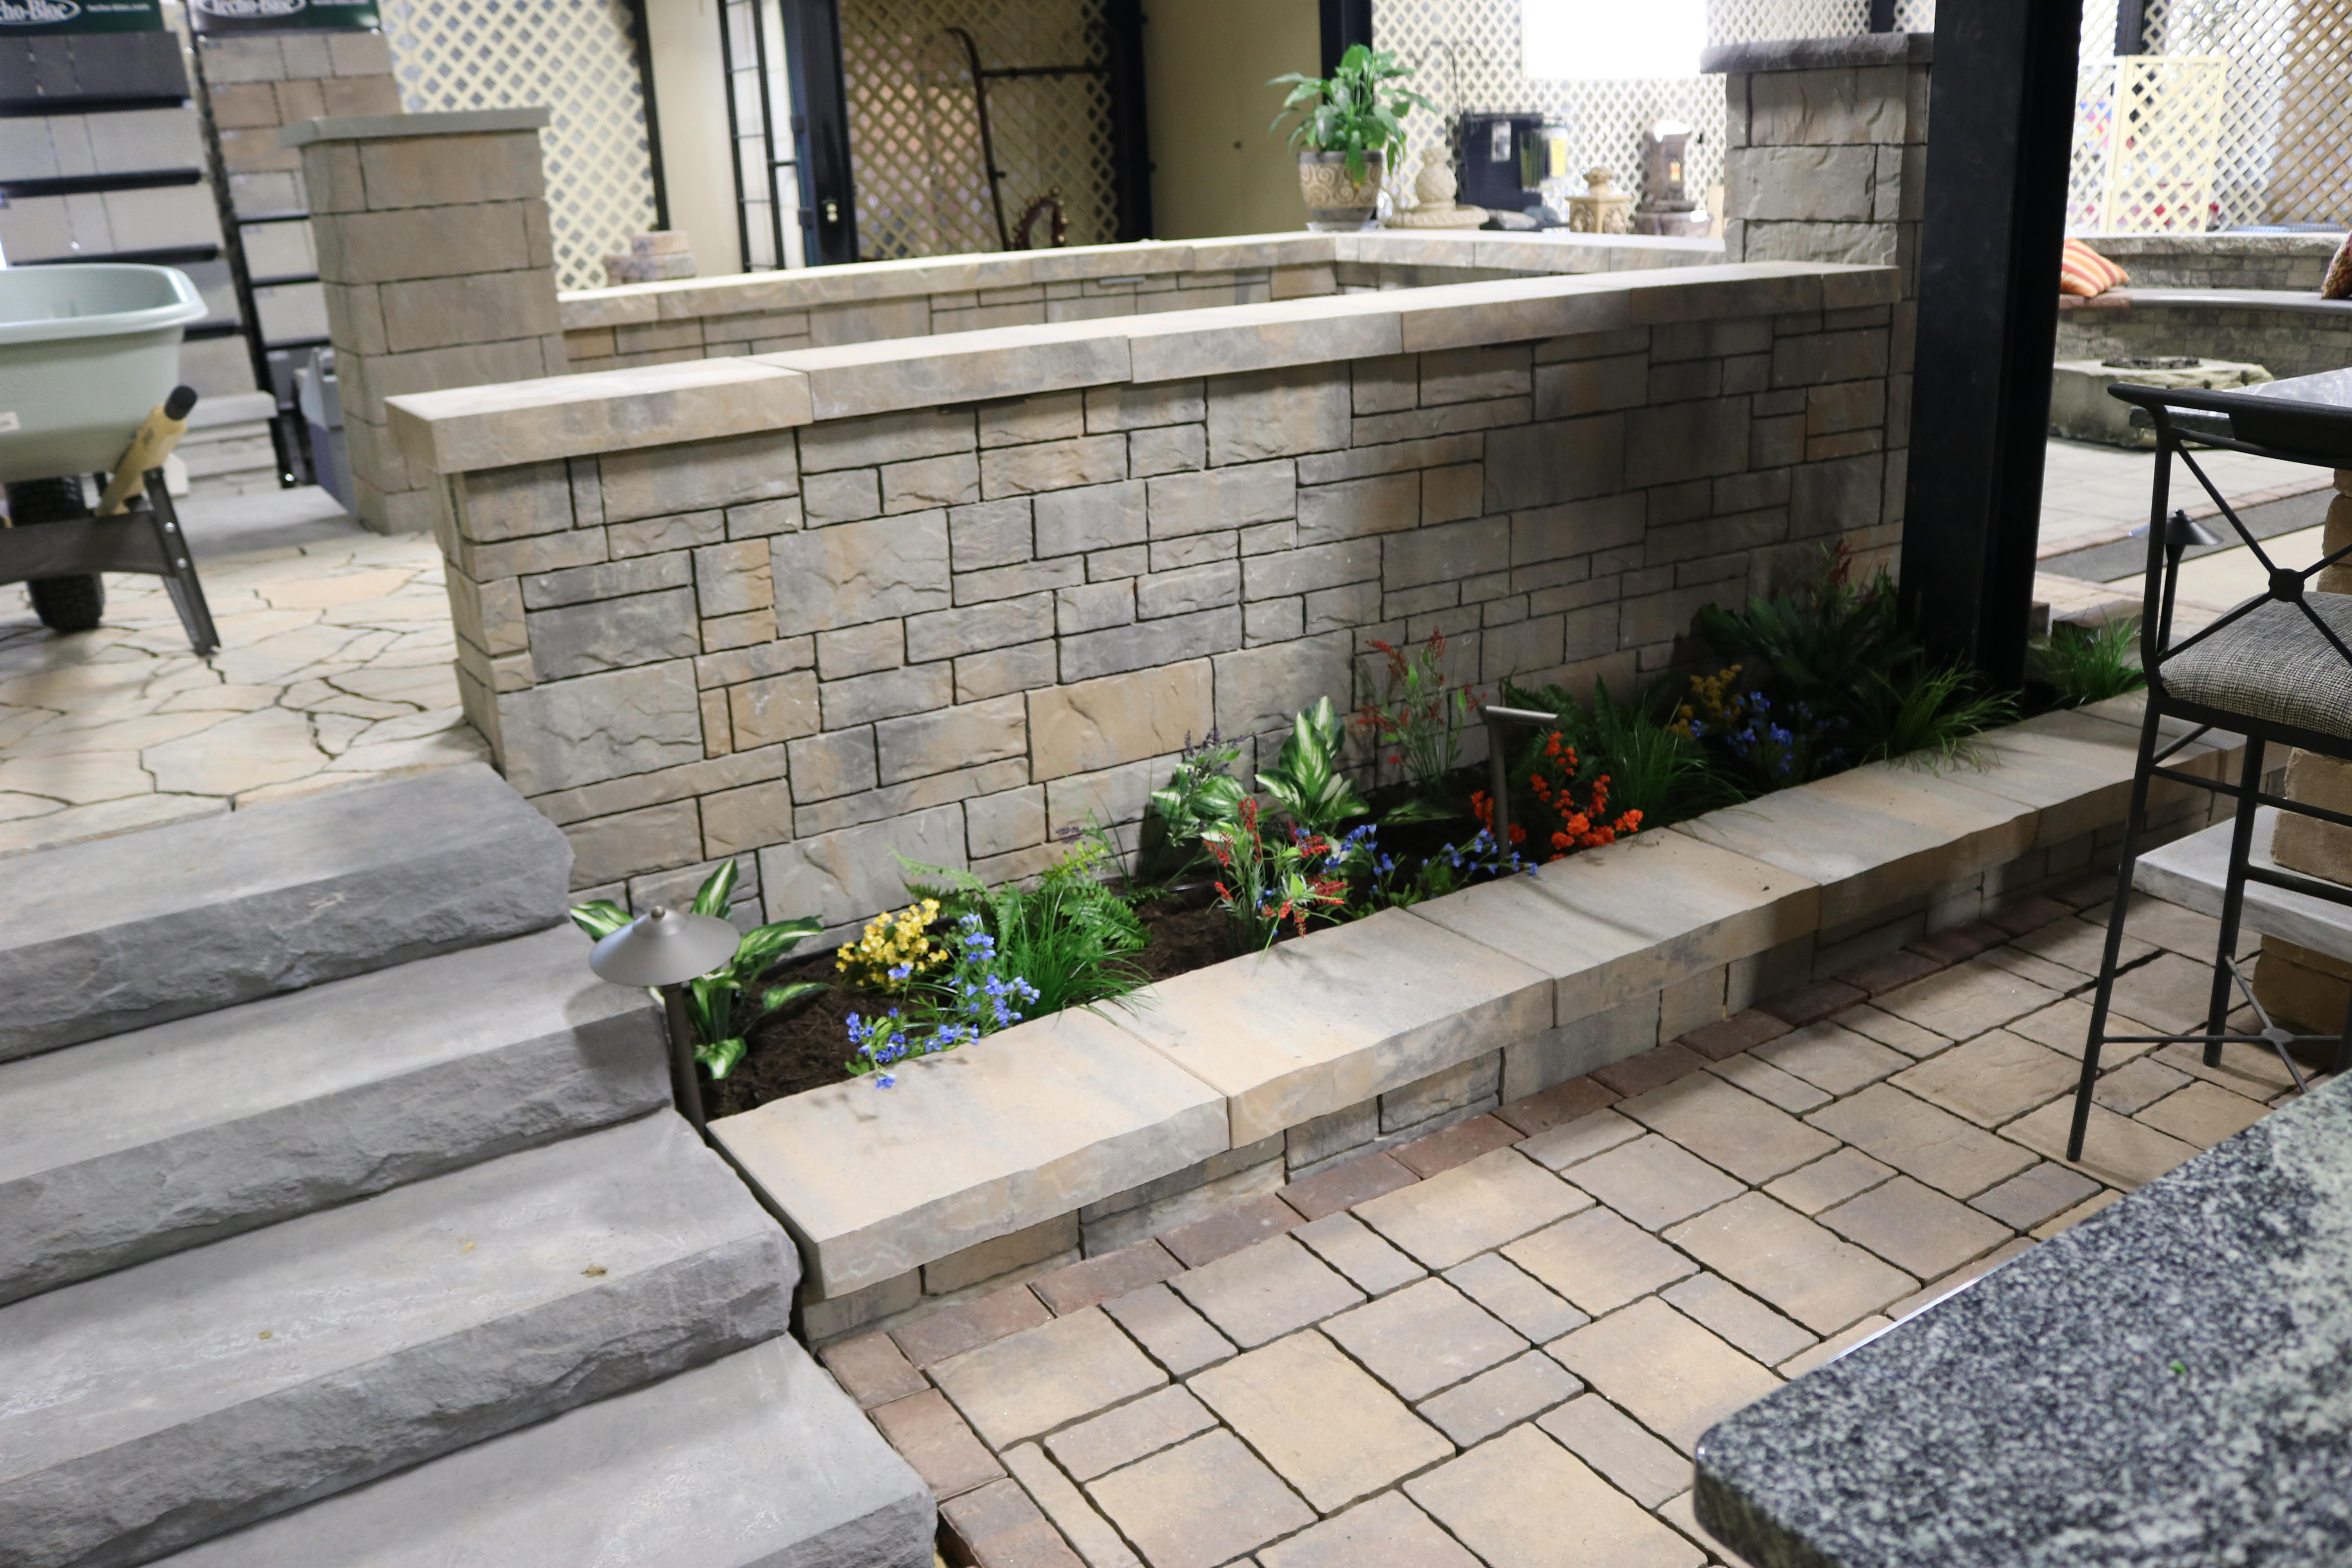 Our hardscaping team offers hardscape design and installation of paver patios, walkways and retaining walls in Chester, Montgomery, Berks and Delaware counties. We're an authorized Techo Bloc and EP Henry contractor.